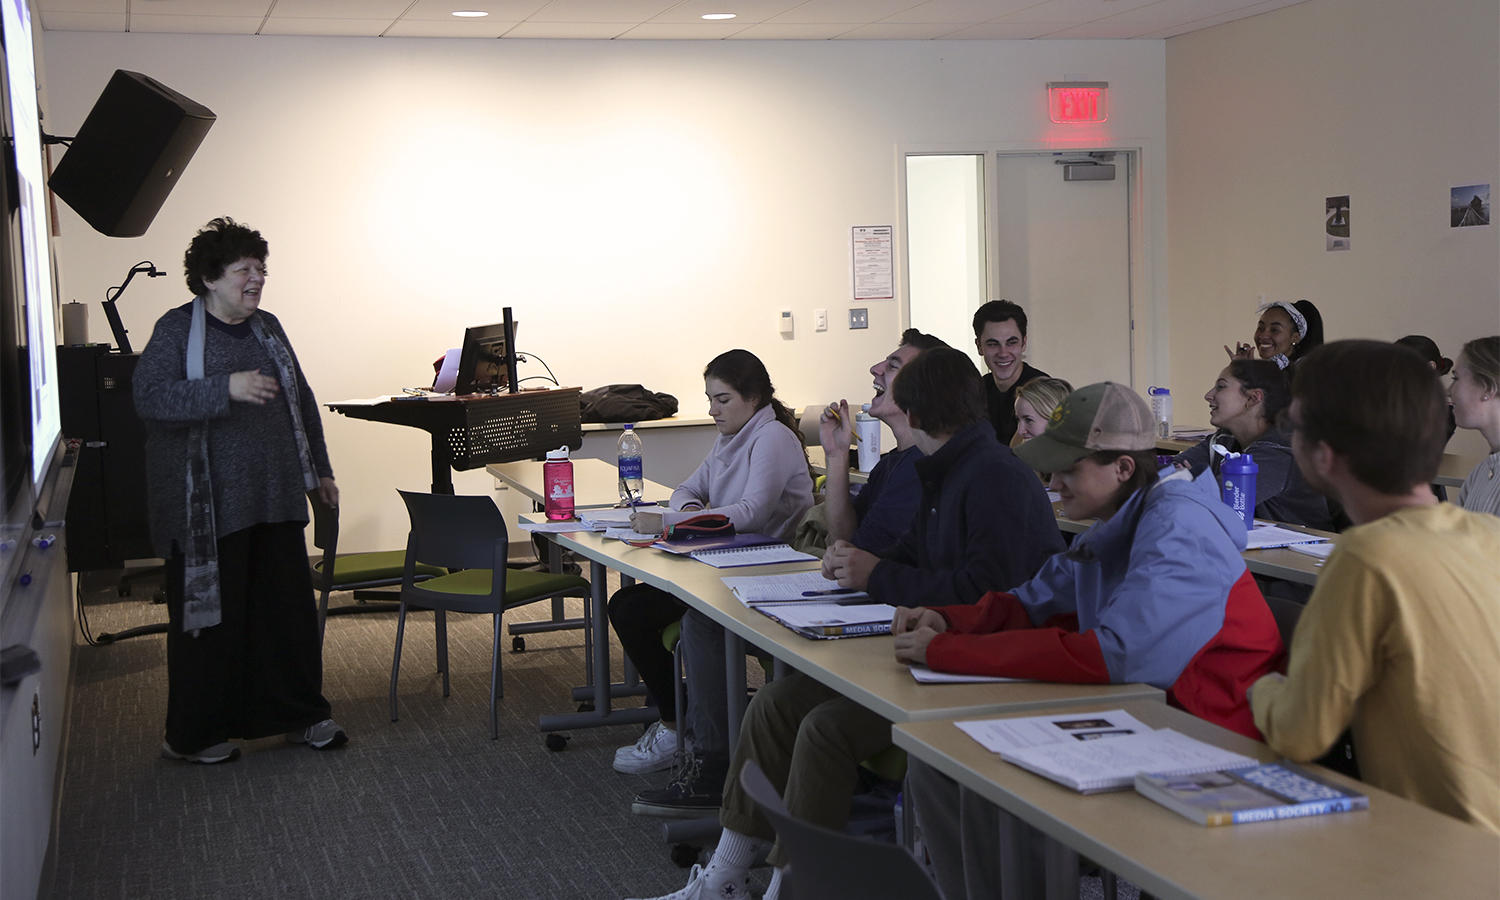 Professor of Media and Society Linda Robertson discusses the state of modern advertising with students in âIntroduction to Media and Societyâ in the Gearan Center for the Performing Arts.